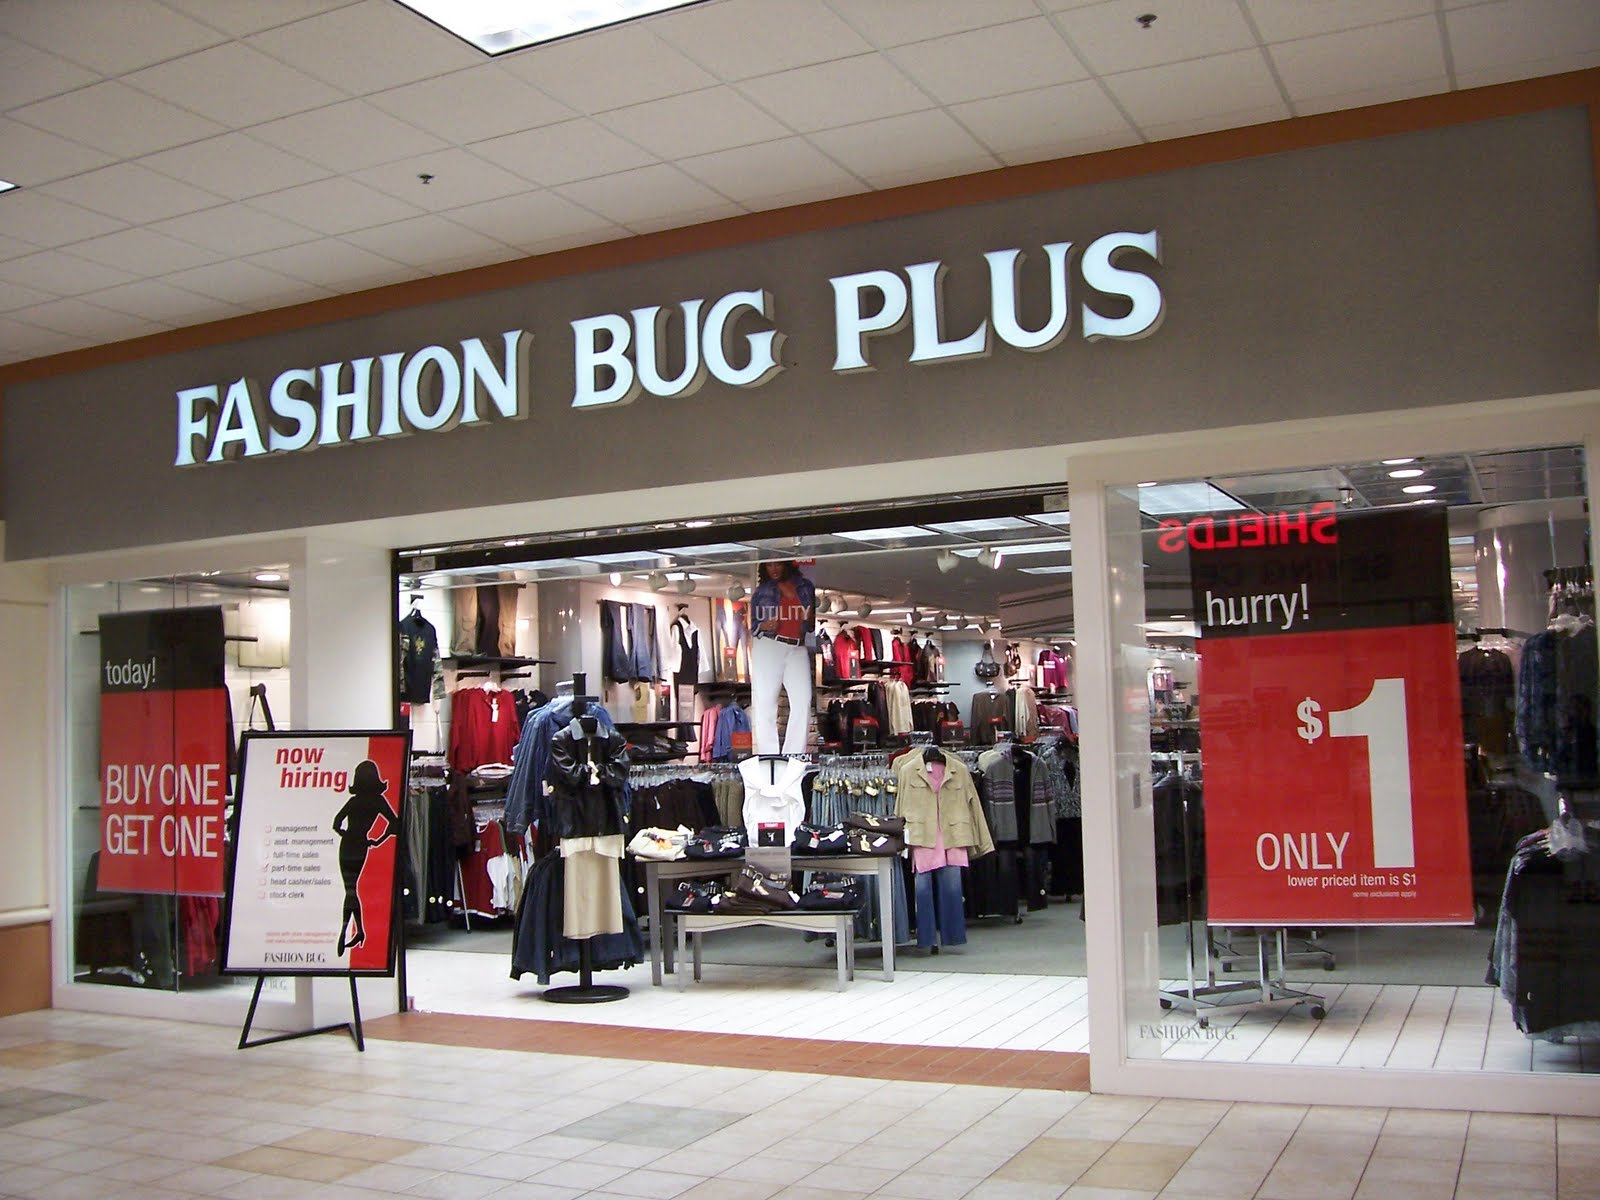 Which fashion bug stores are closing